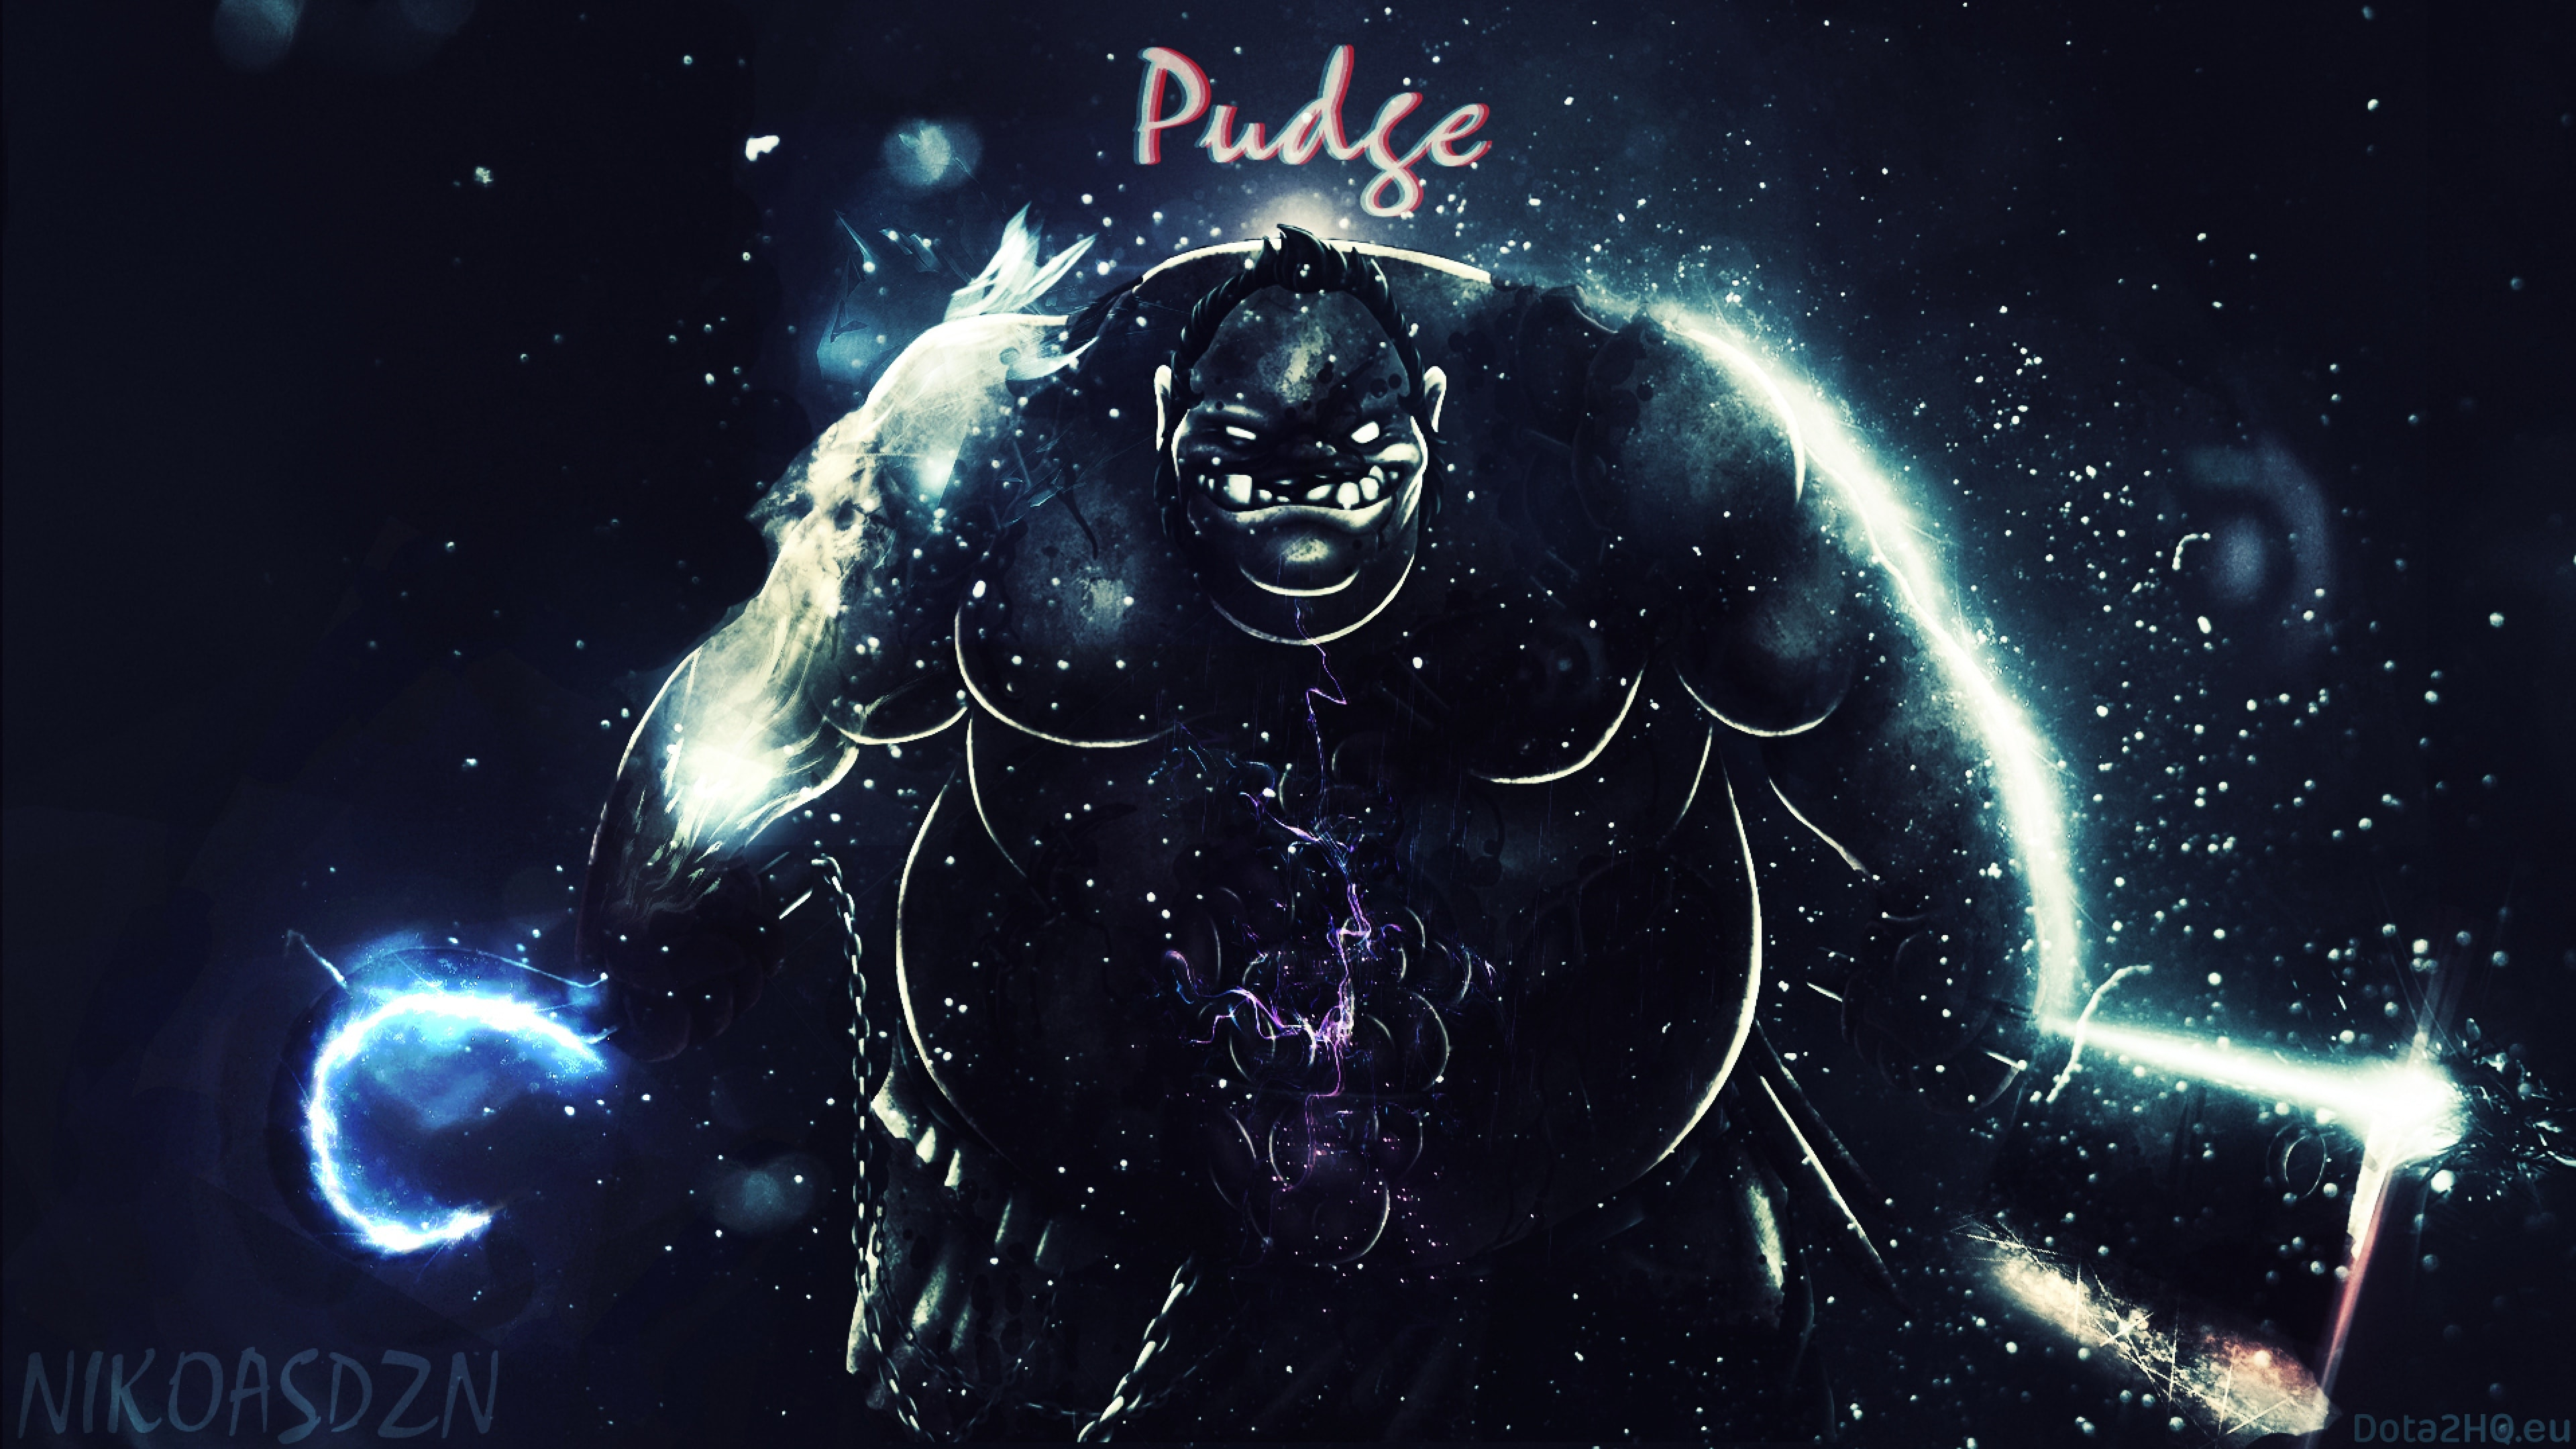 Dota2 : Pudge for mobile